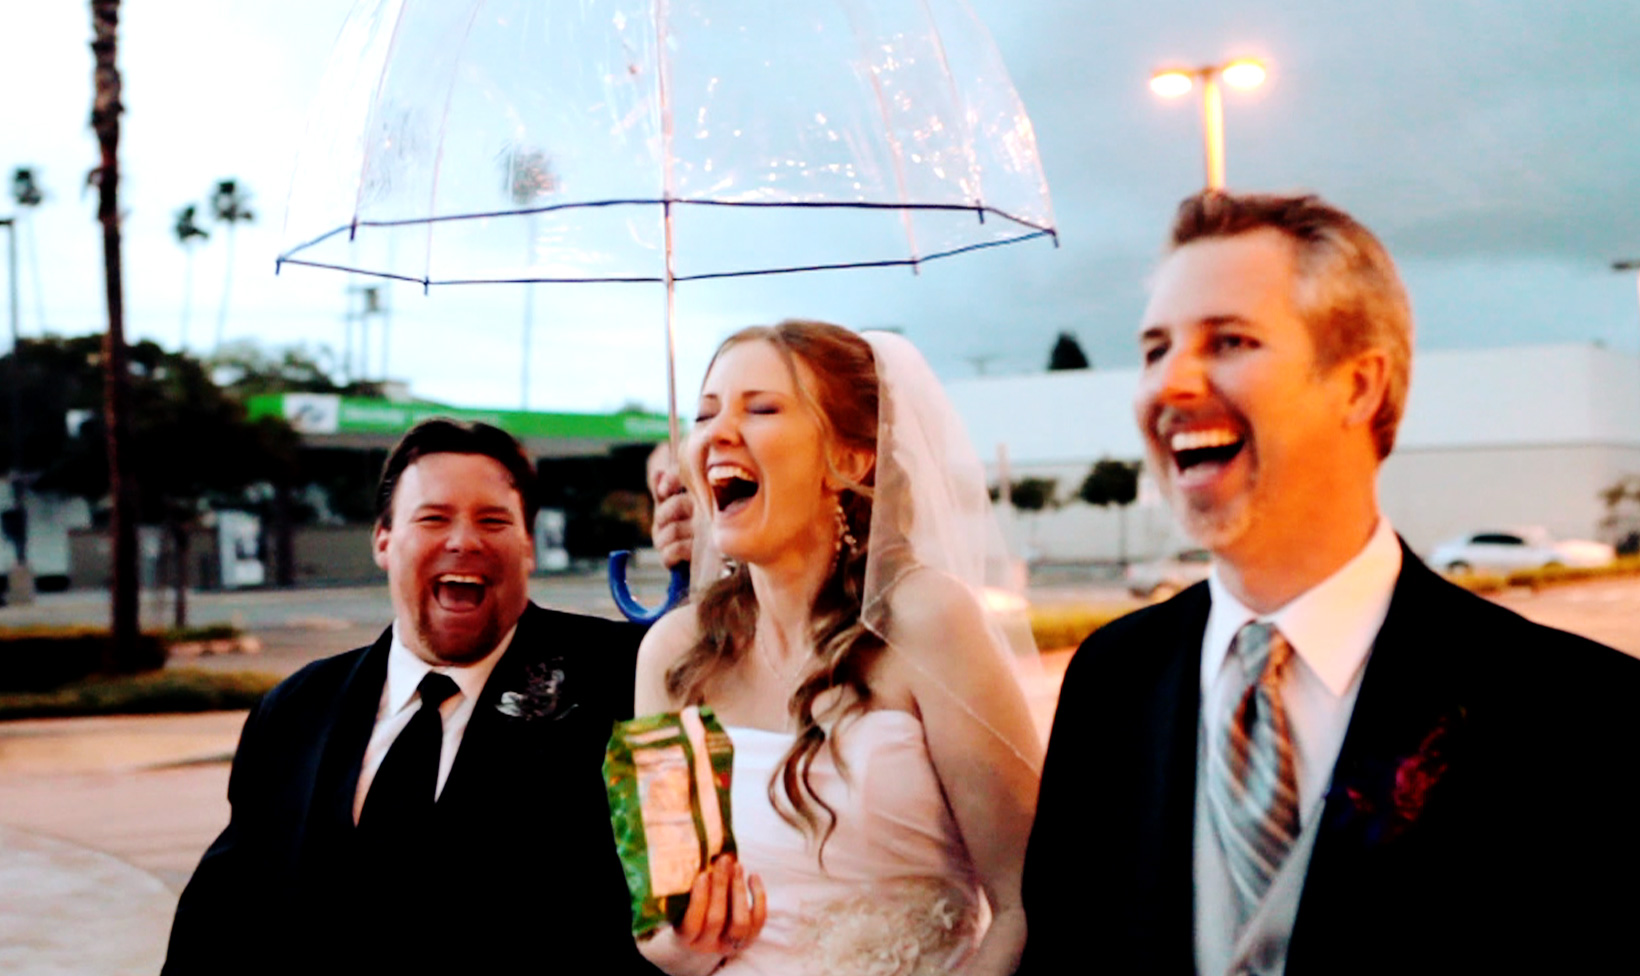 bride enjoying herself in the rain eating chips under an umbrella